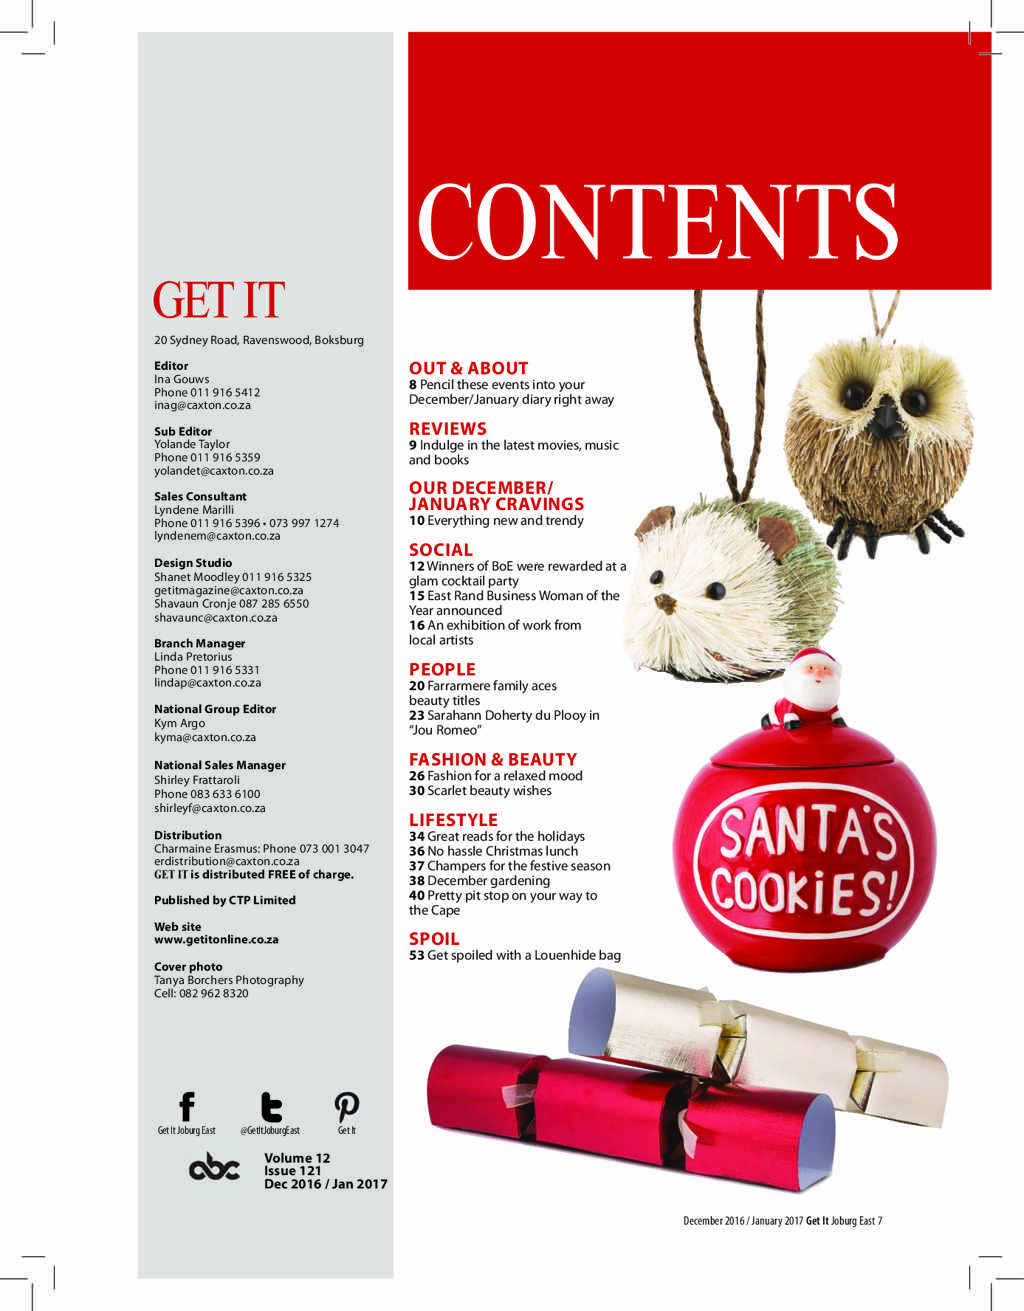 get-it-magazine-december-january-2016-epapers-page-7